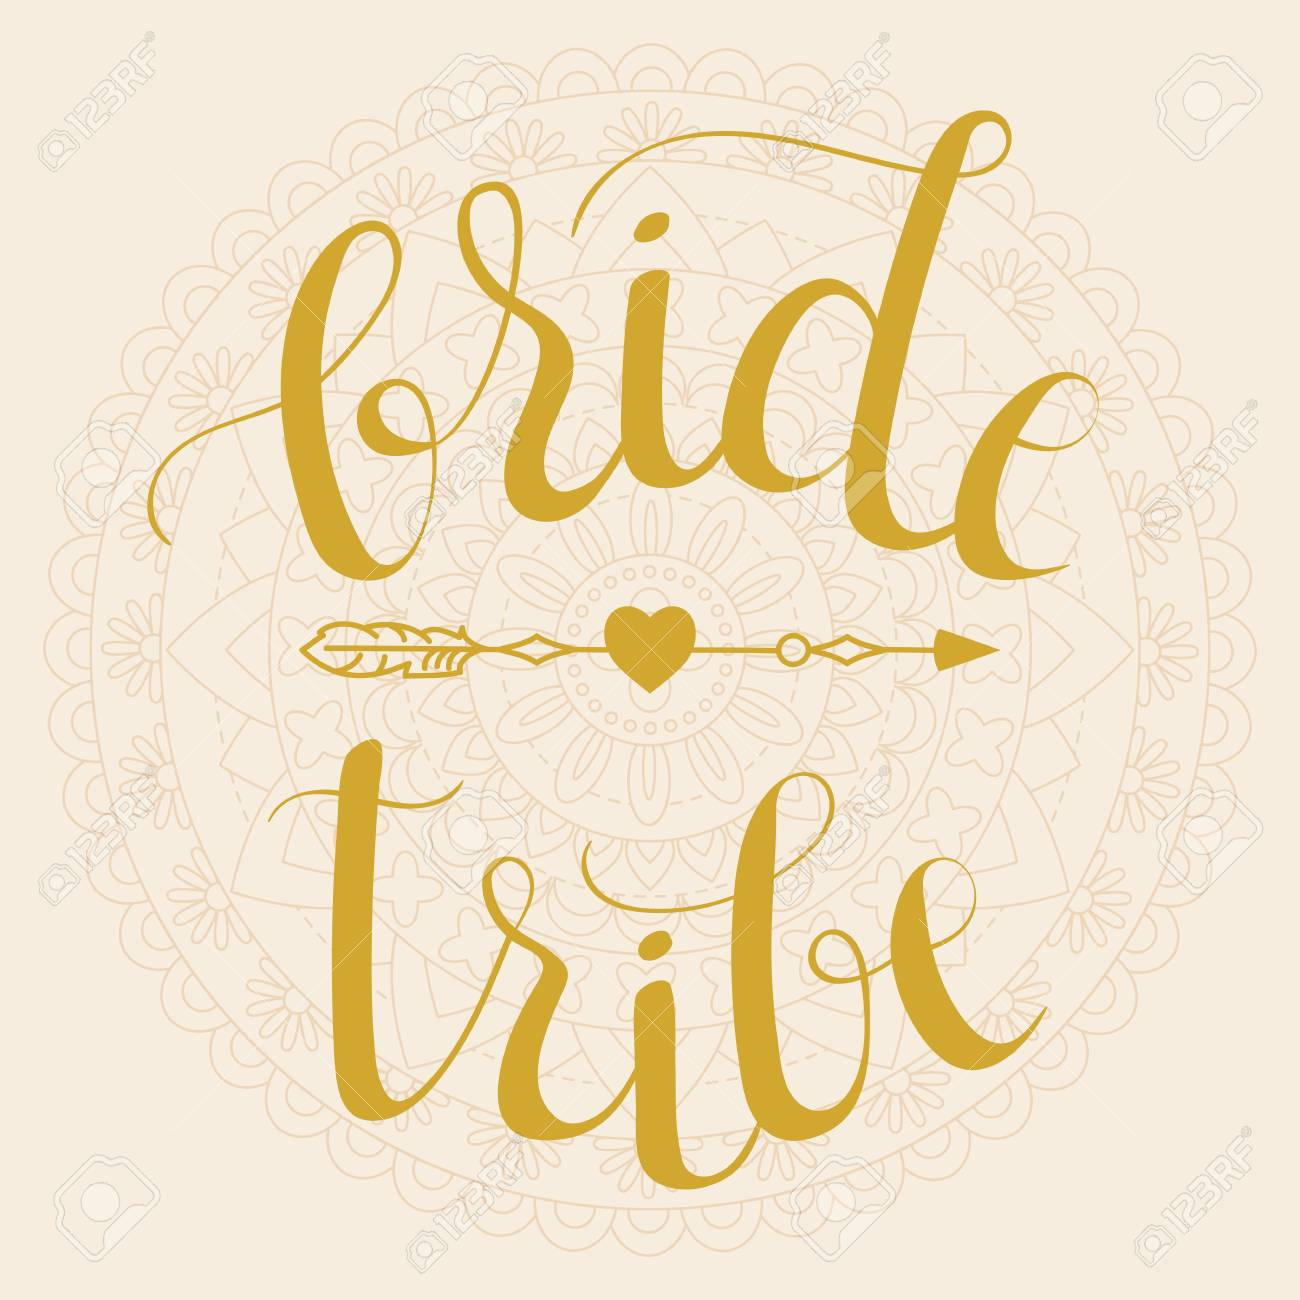 bride tribe bridal party wedding hand lettering phrase with